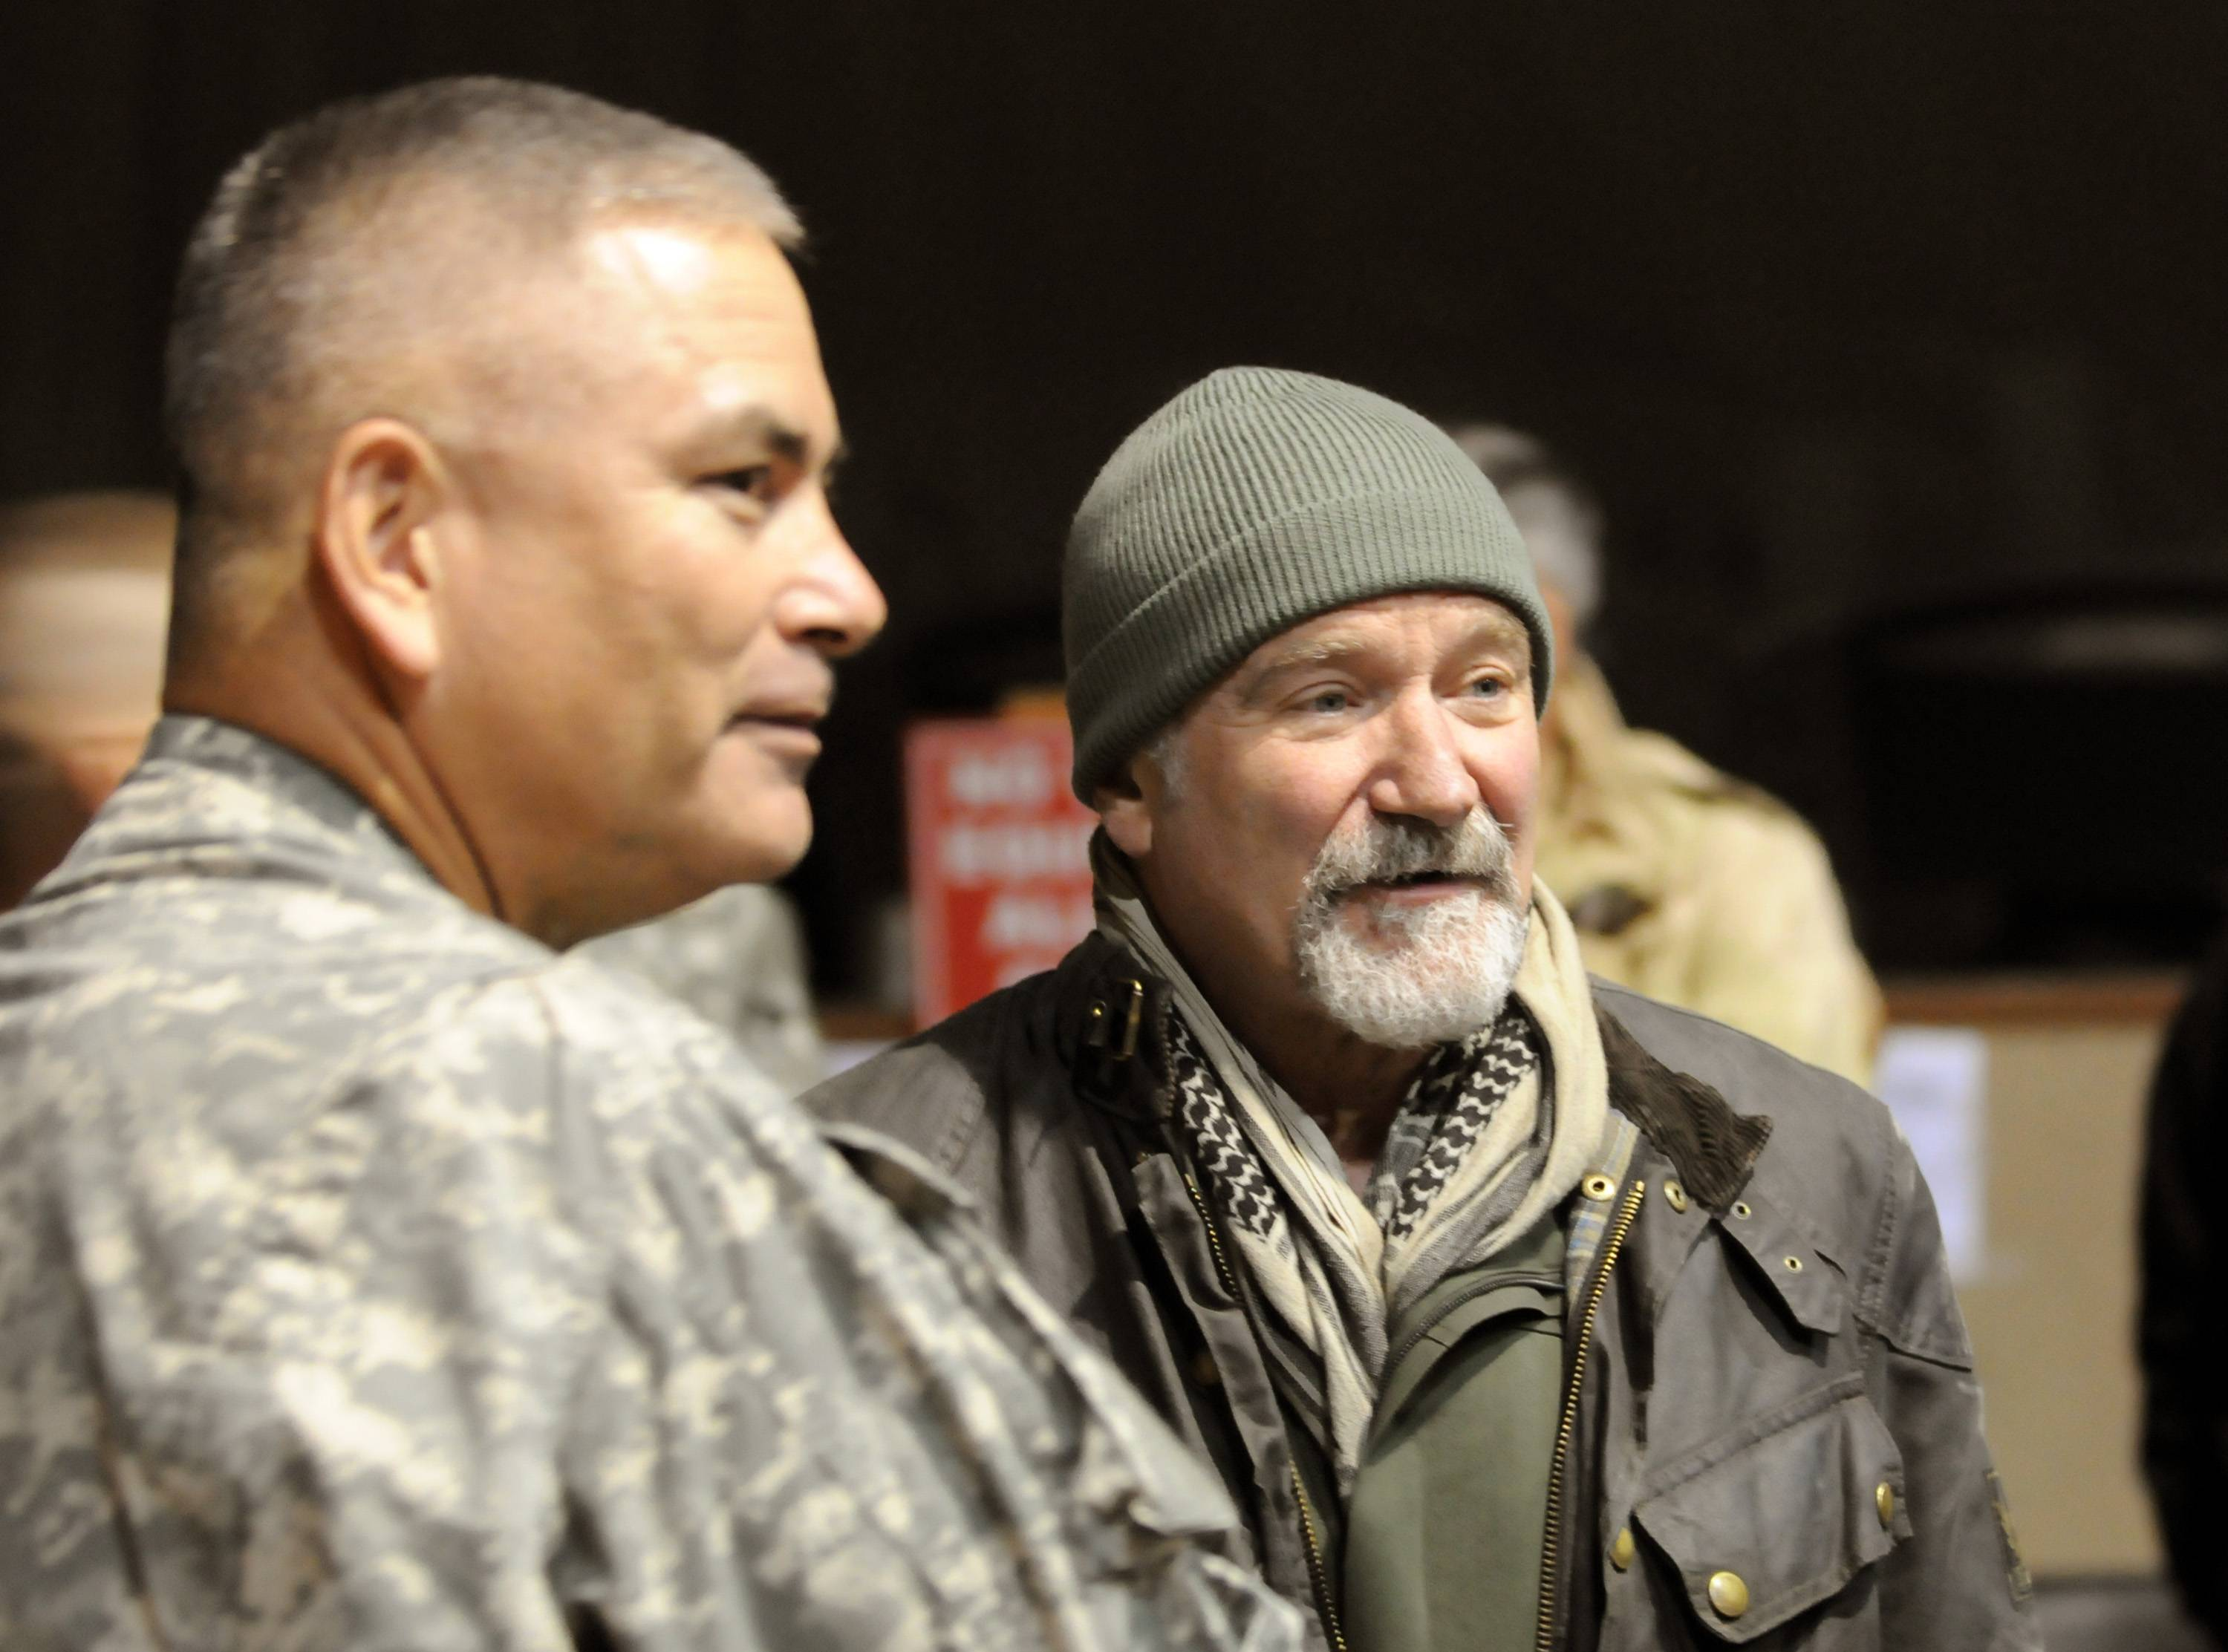 This Dec. 15, 2010 photo released by the U.S. Department of Defense shows actor-comedian Robin Williams, right, with U.S. Army Maj. Gen John F. Campbell, Combined Joint Task Force 101 and Regional Command East commander, before the annual USO Holiday Tour at Bagram Air Field, in Afghanistan.